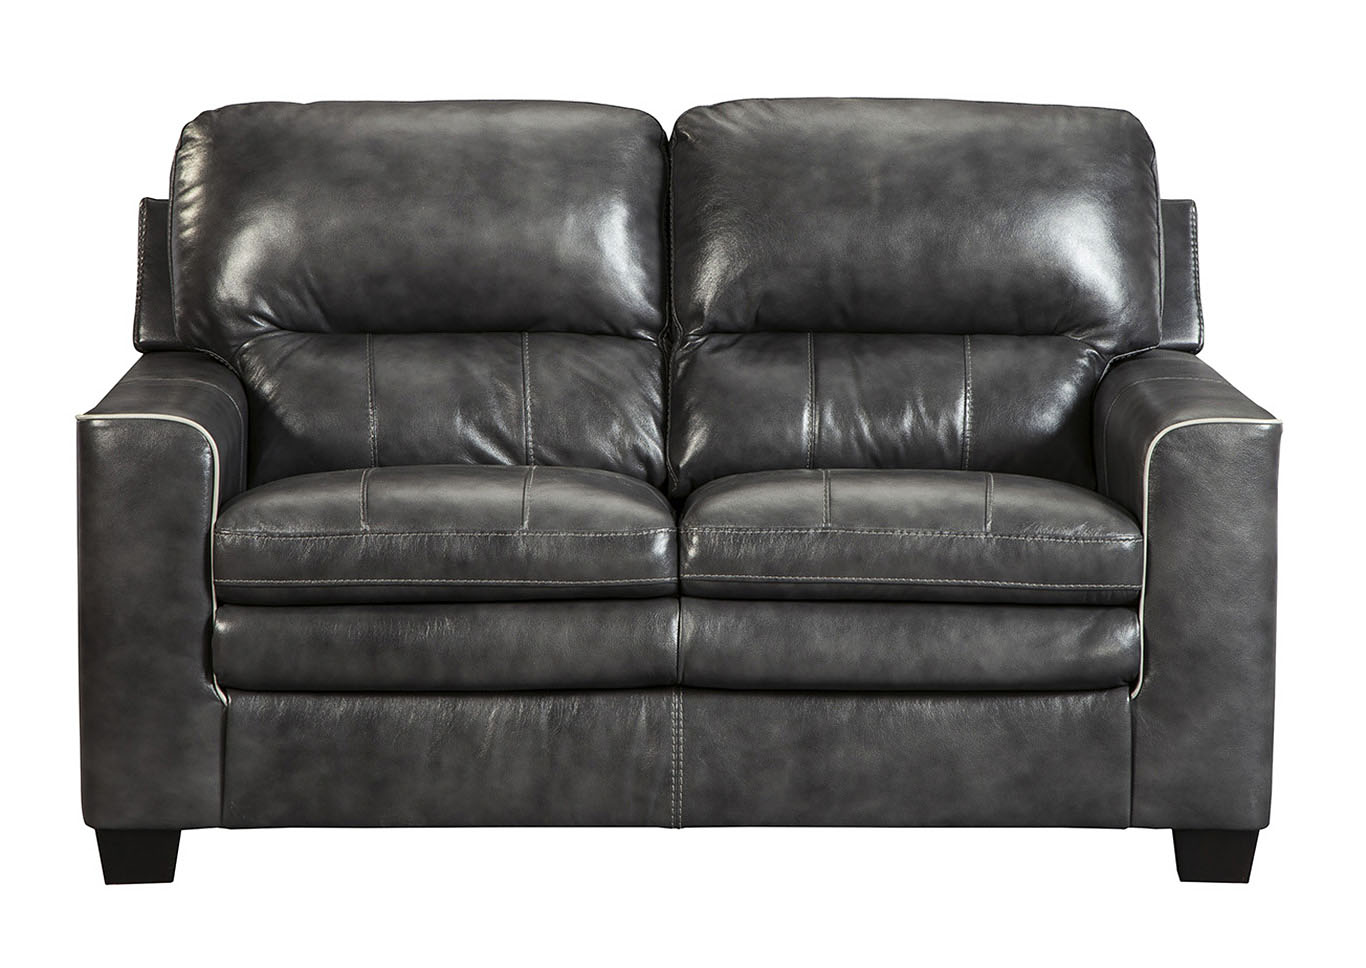 Gleason Charcoal Loveseat,Signature Design By Ashley